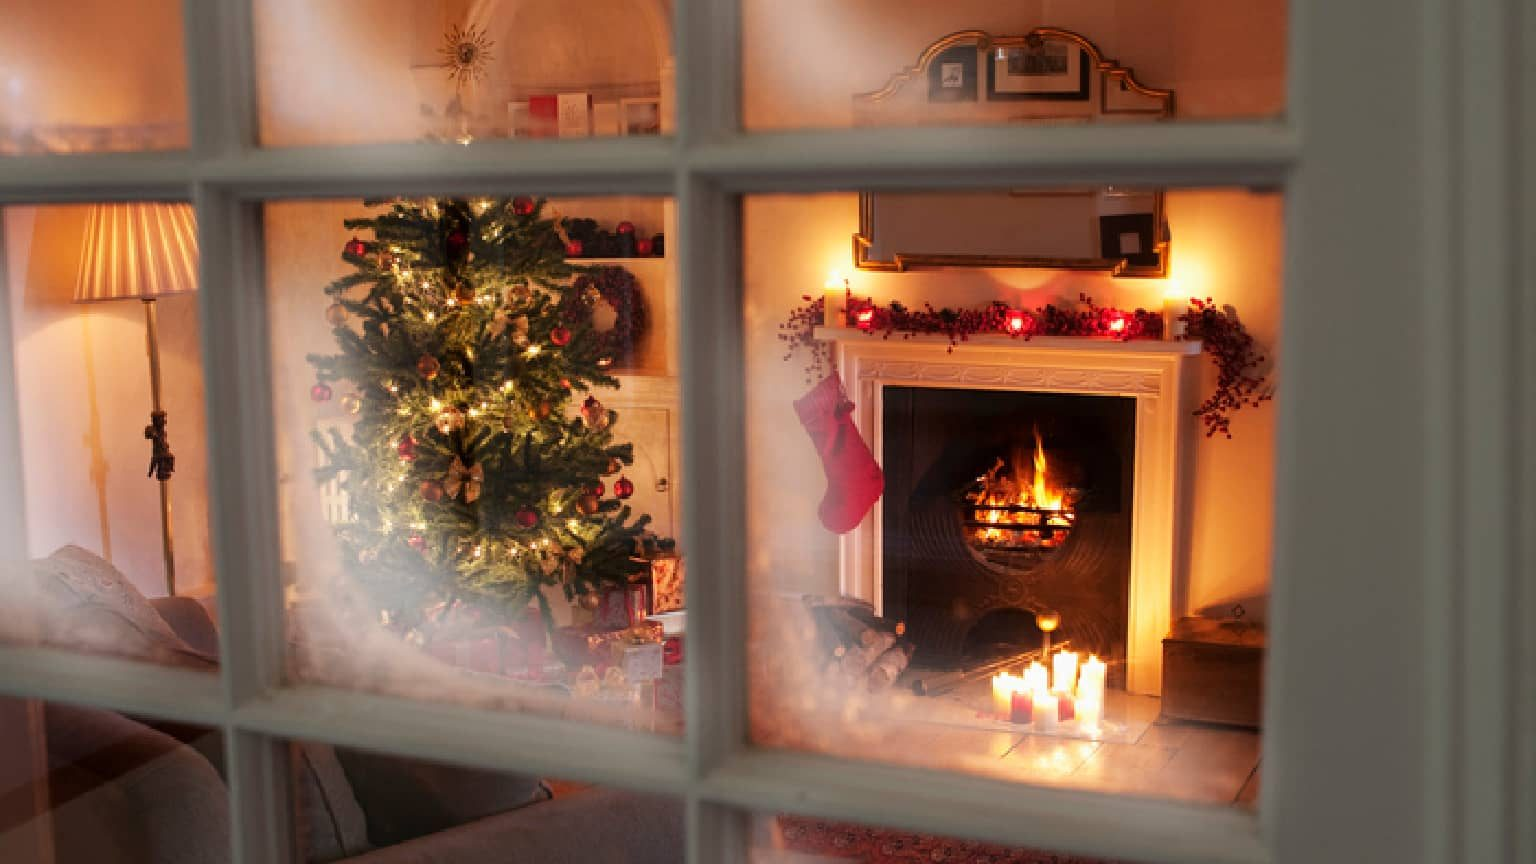 a home decorated for Christmas with a fireplace lit